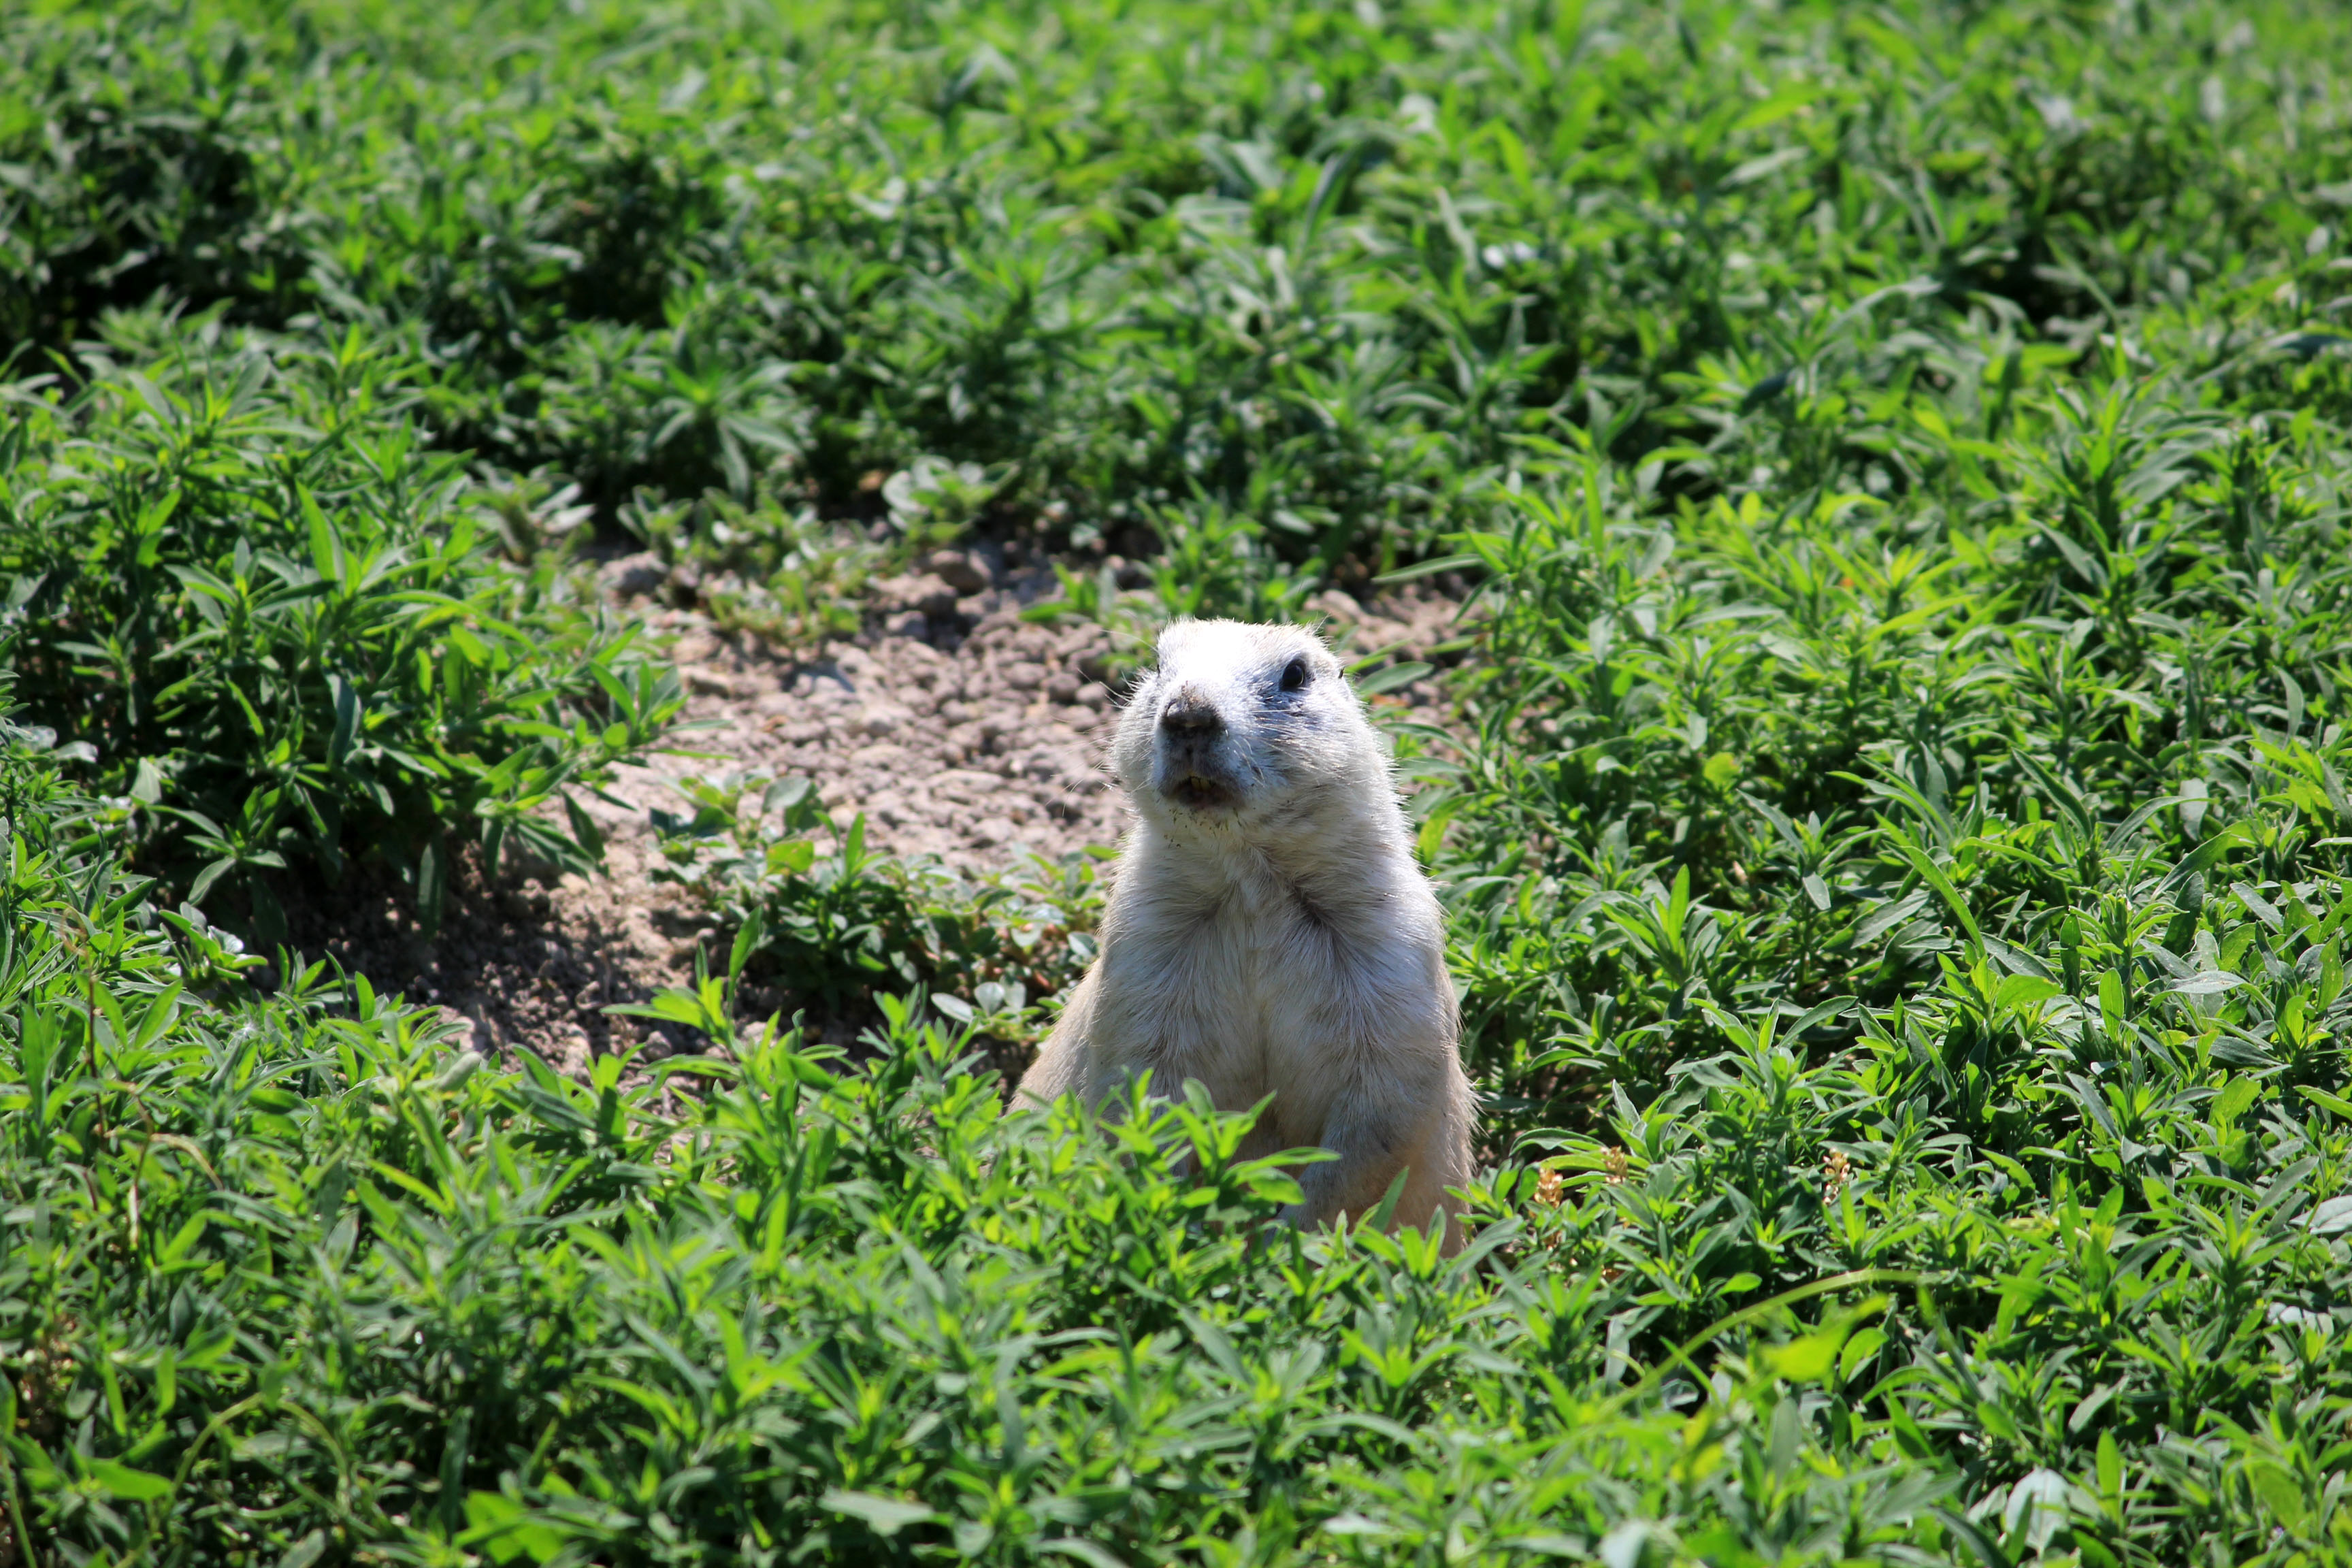 Prairie Dog coming out of its hole